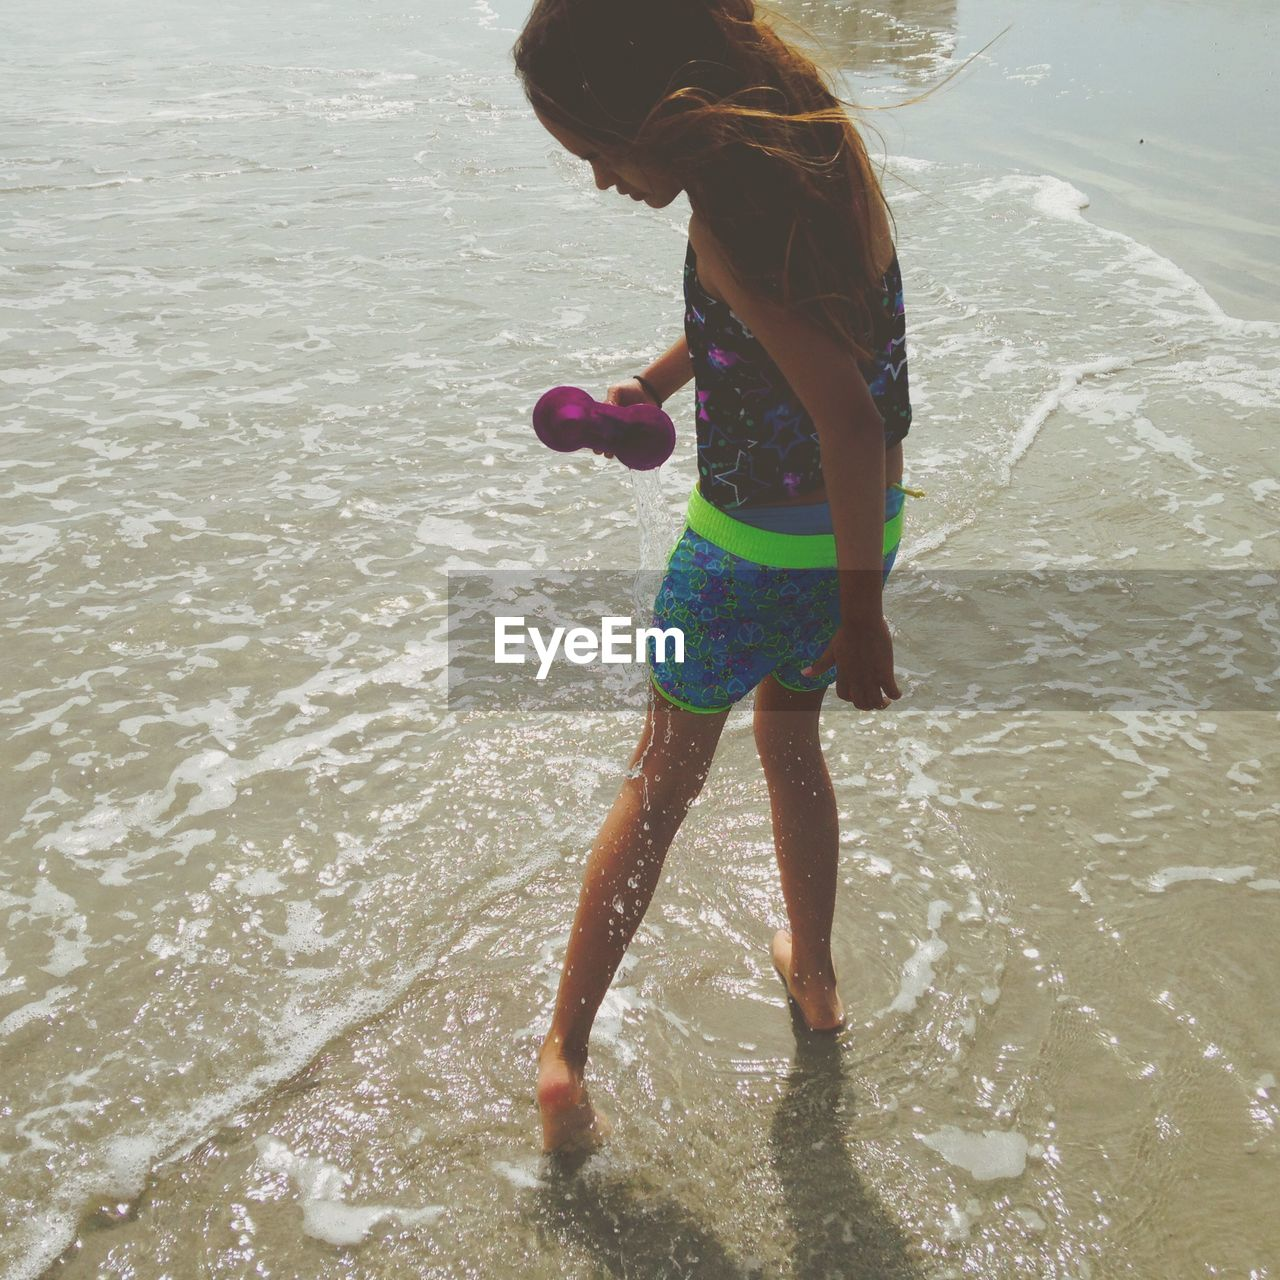 full length, water, beach, girls, childhood, leisure activity, real people, one person, wet, motion, ankle deep in water, fun, vacations, sand, elementary age, outdoors, day, summer, nature, lifestyles, sea, playing, sand pail and shovel, people